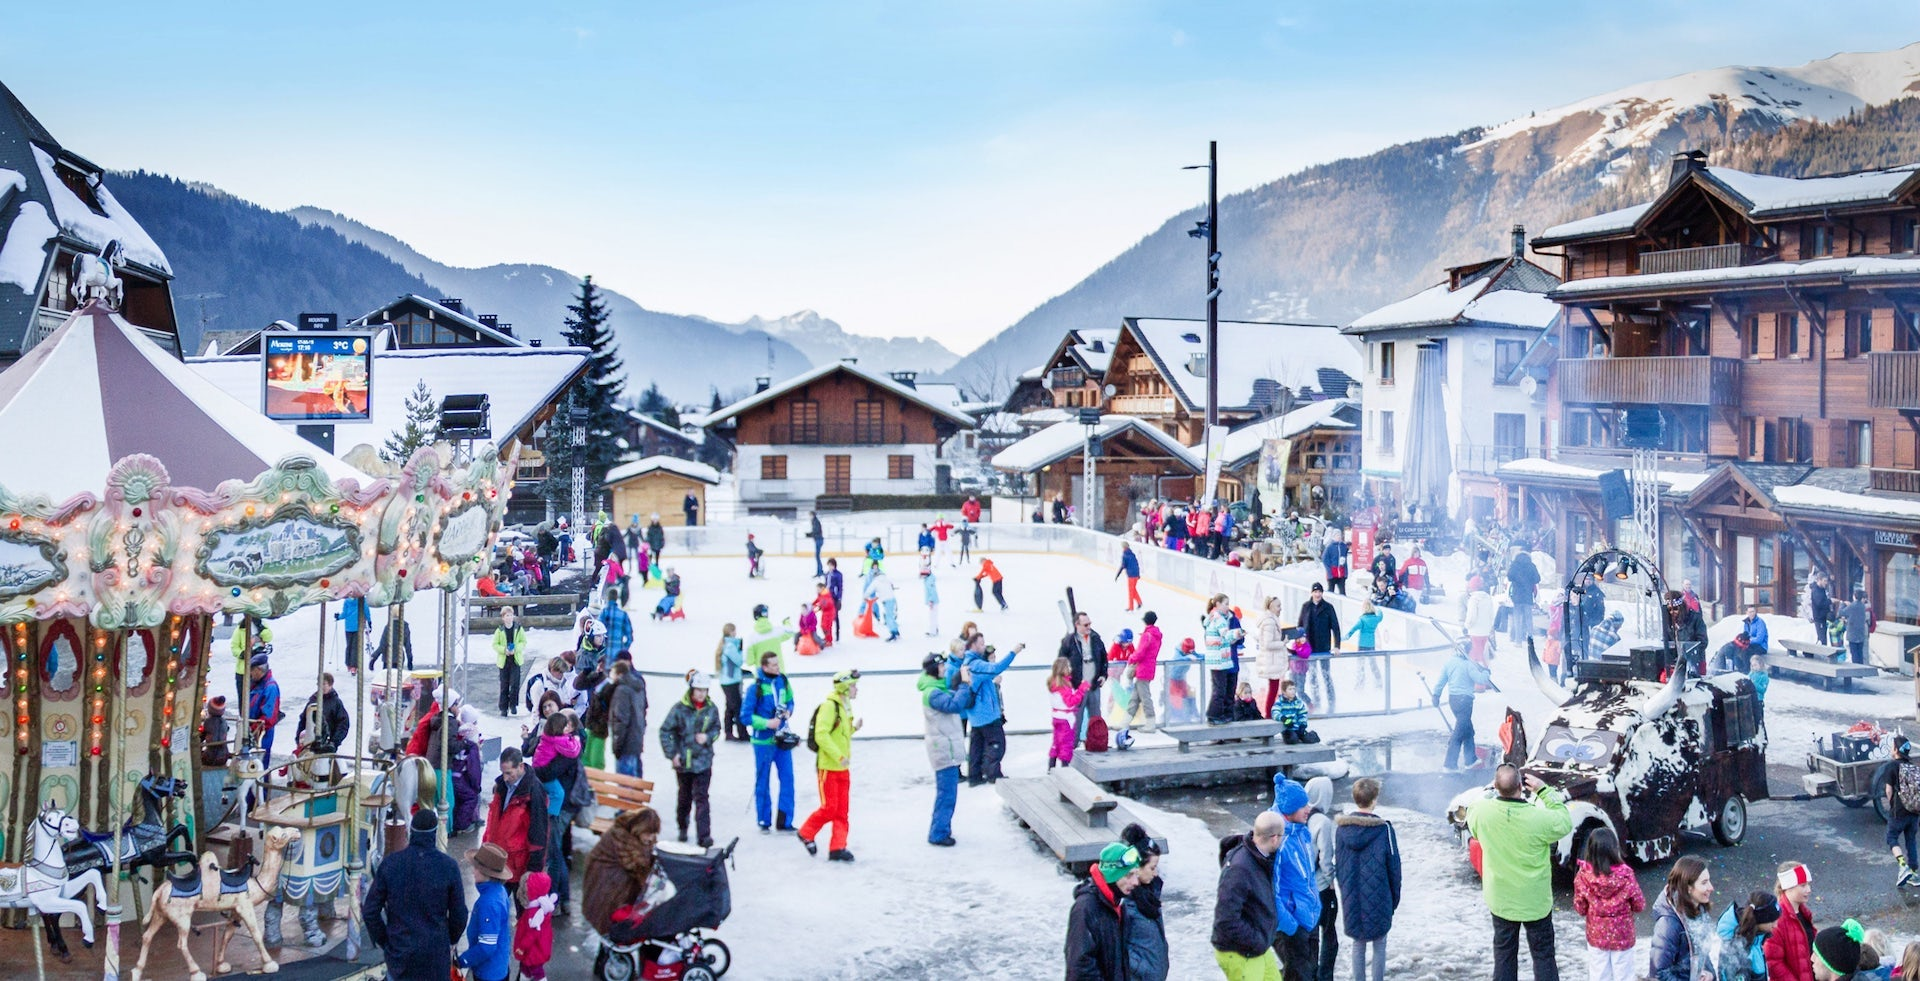 Families in a snowy square with an ice rink in the centre of the family friendly resort of Morzine in winter.